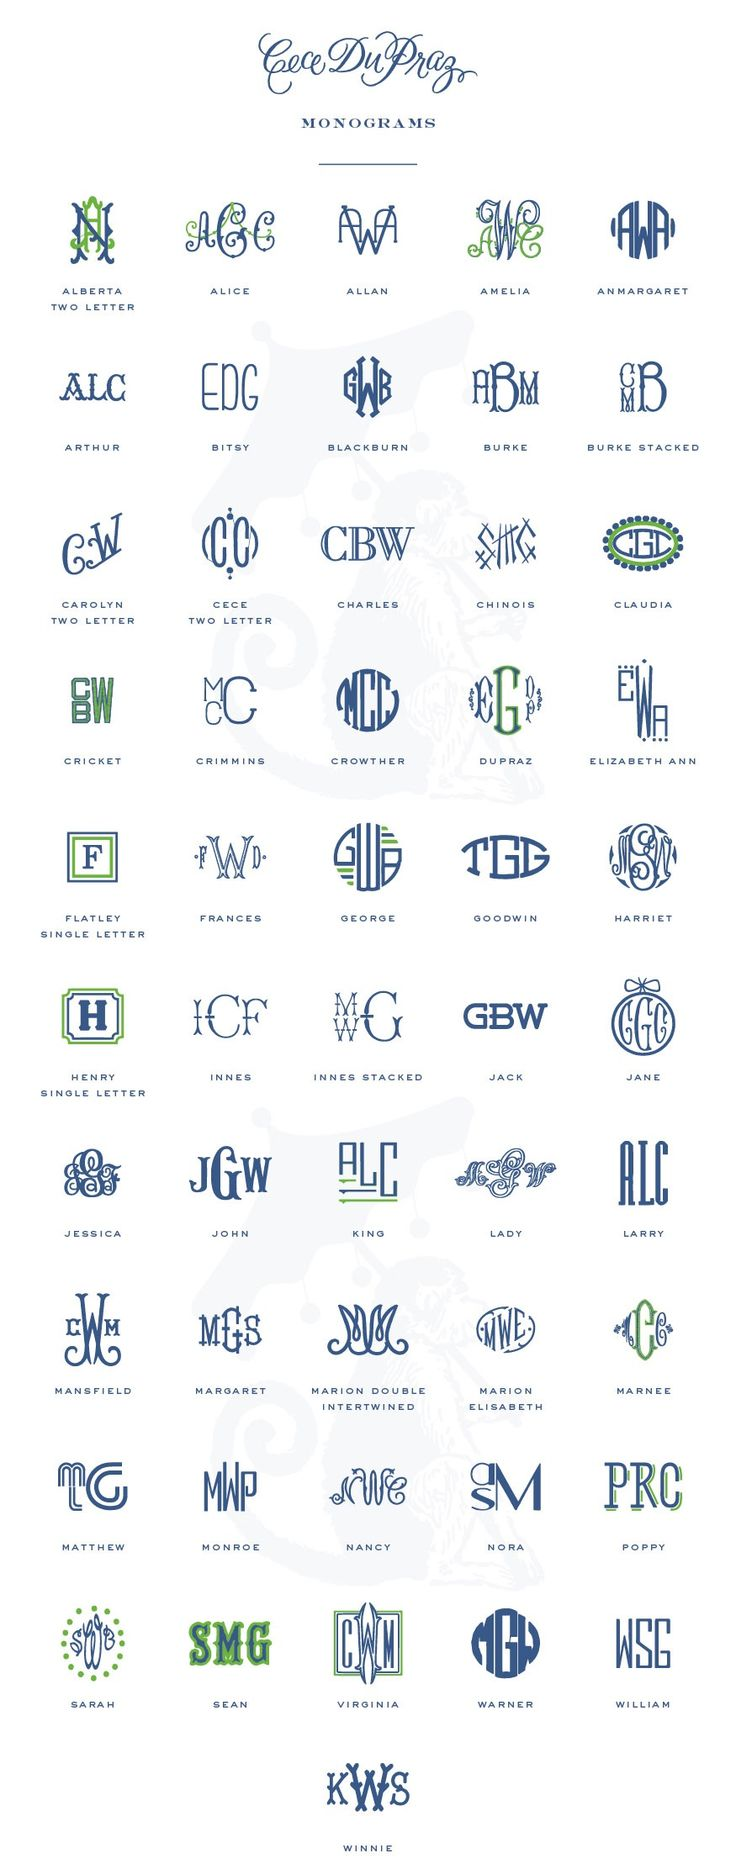 Our 2015 collection of monograms. http://cecedupraz.com/pages/monograms#monograms